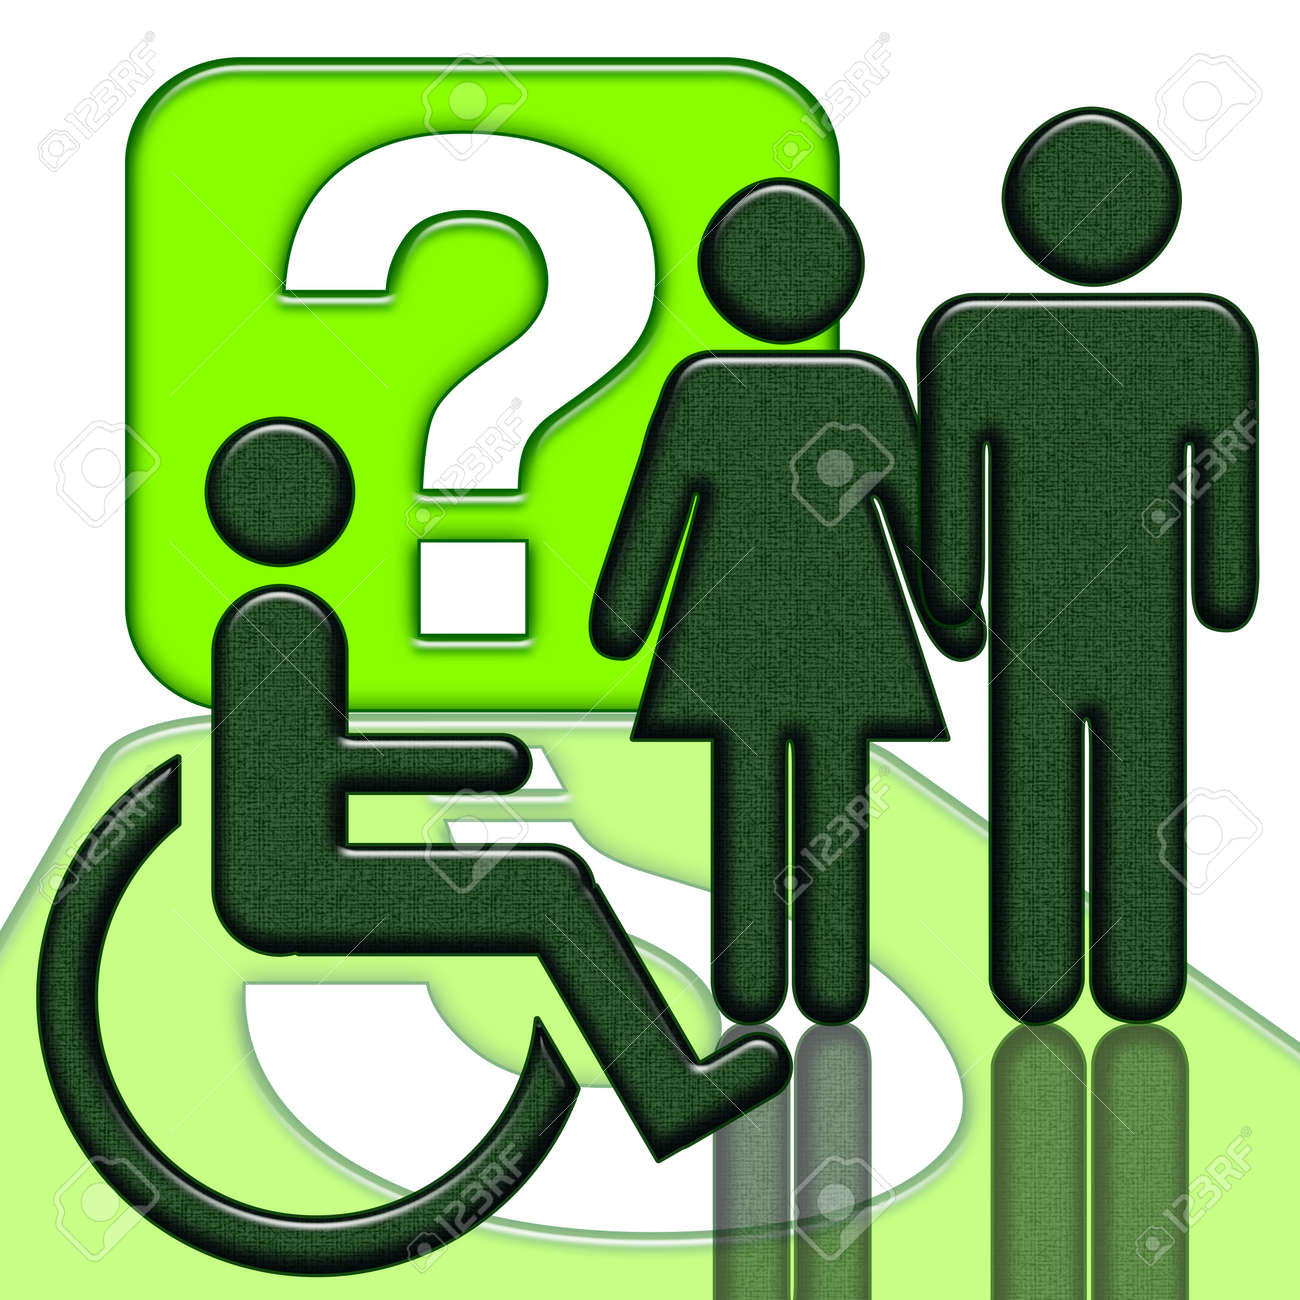 Man and woman near handicapped person in wheelchair green icon isolated over white background Stock Photo - 9116784